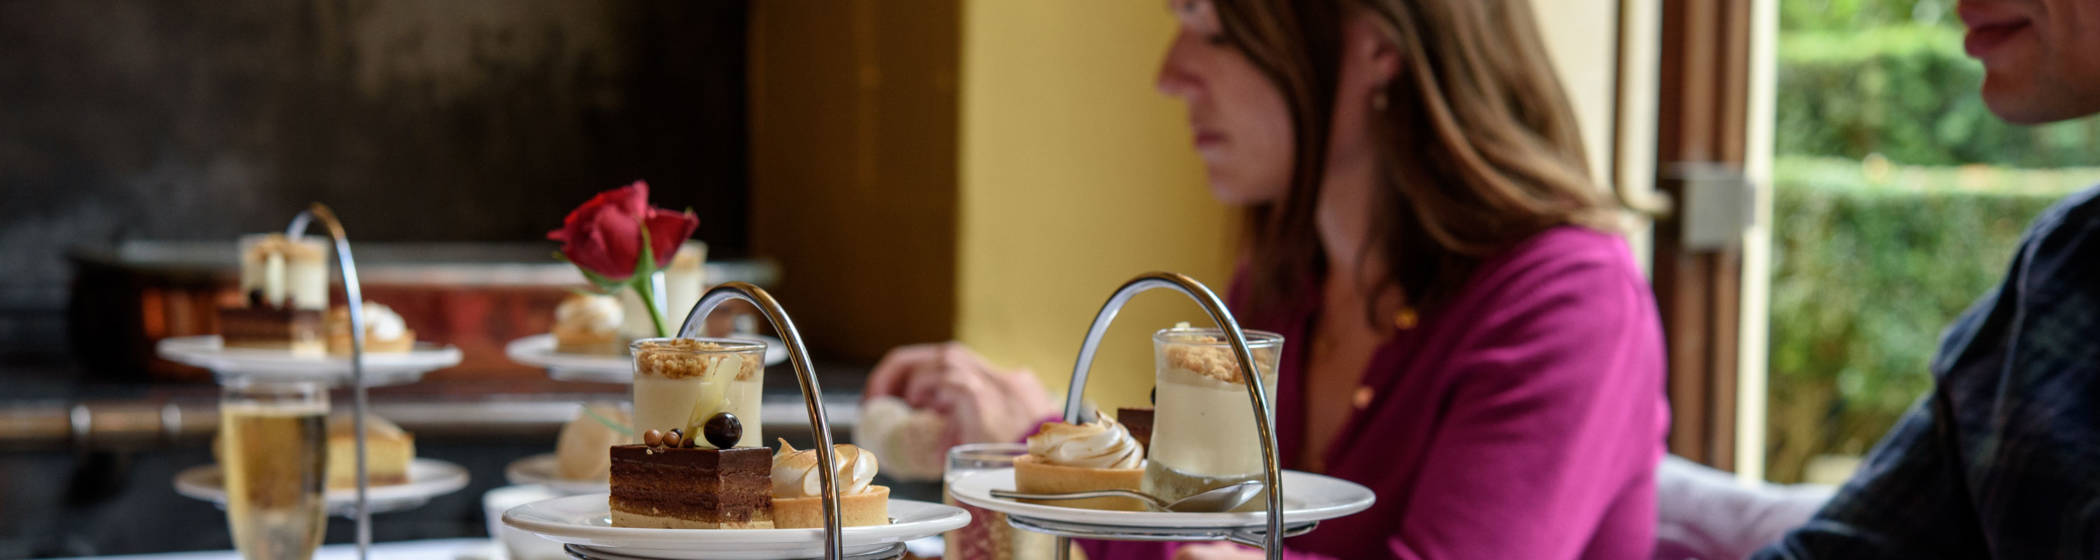 Afternoon tea in the Manor Restaurant